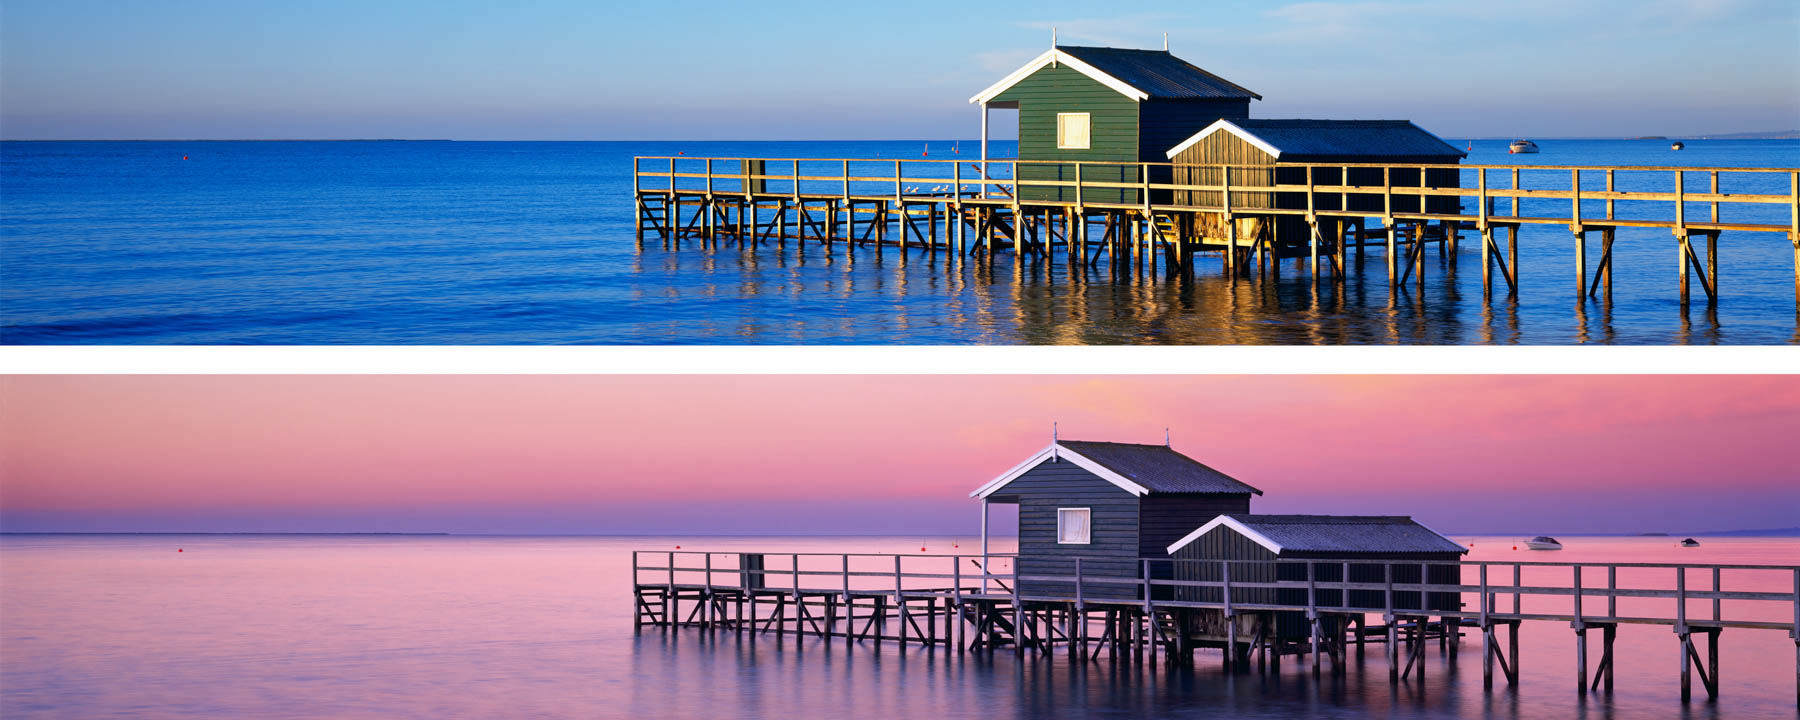 Two images of huts on a jetty, taken one hour apart in late afternoon and at twilight.